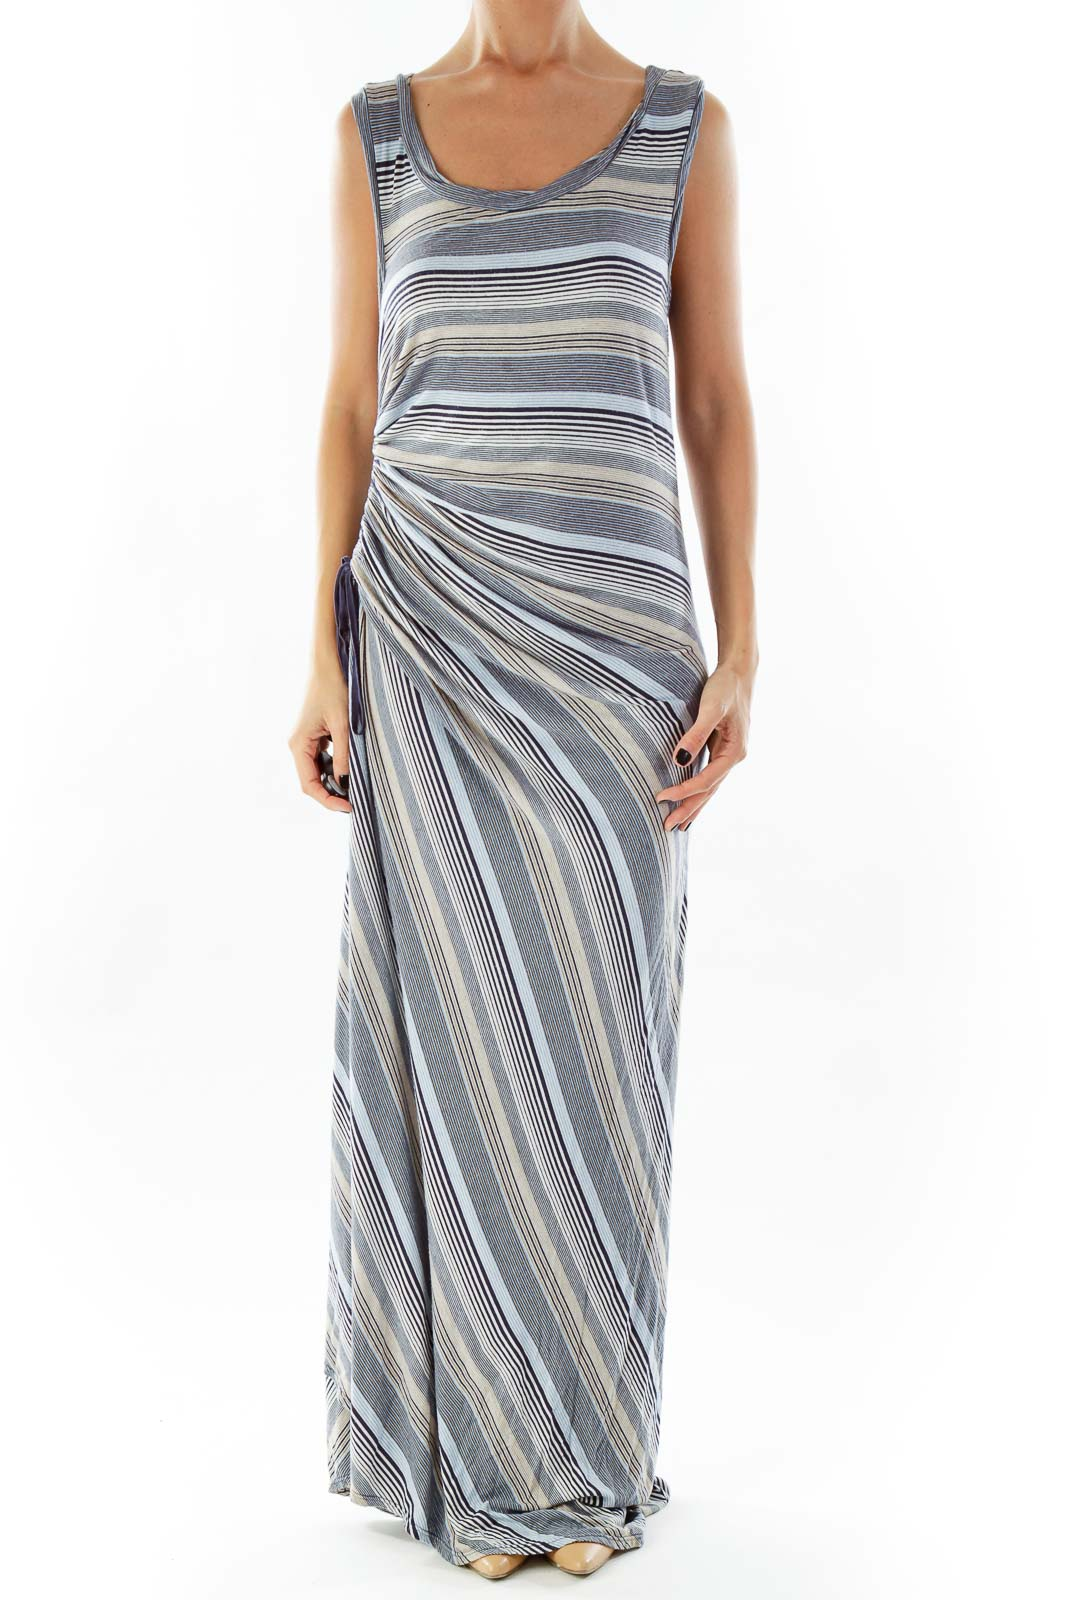 bb2958ad4c Shop Multicolor Striped Sleeveless Maxi Dress clothing and handbags at  SilkRoll. Trade with us!